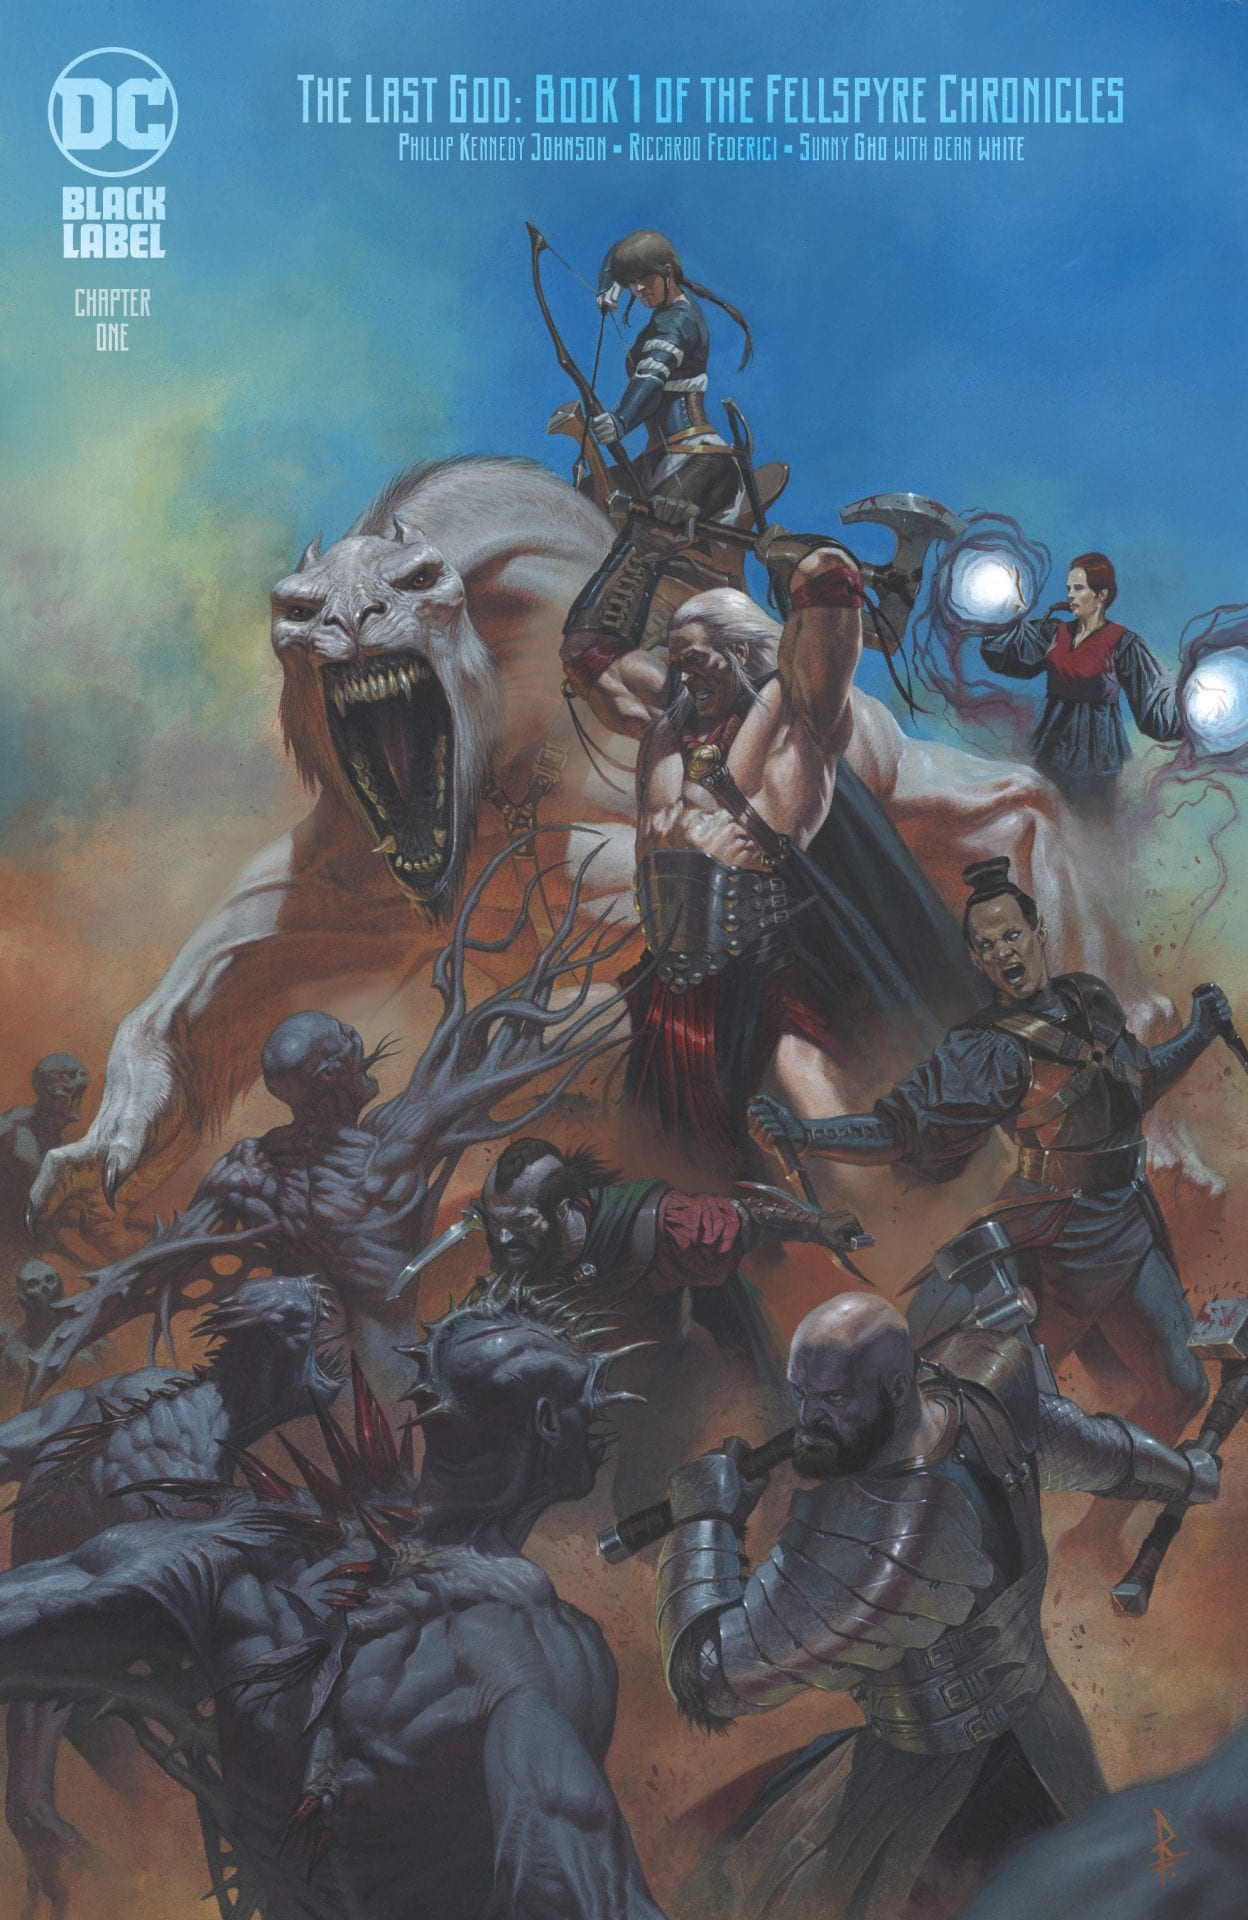 Review: THE LAST GOD #1 - High Art, Low Fantasy 5